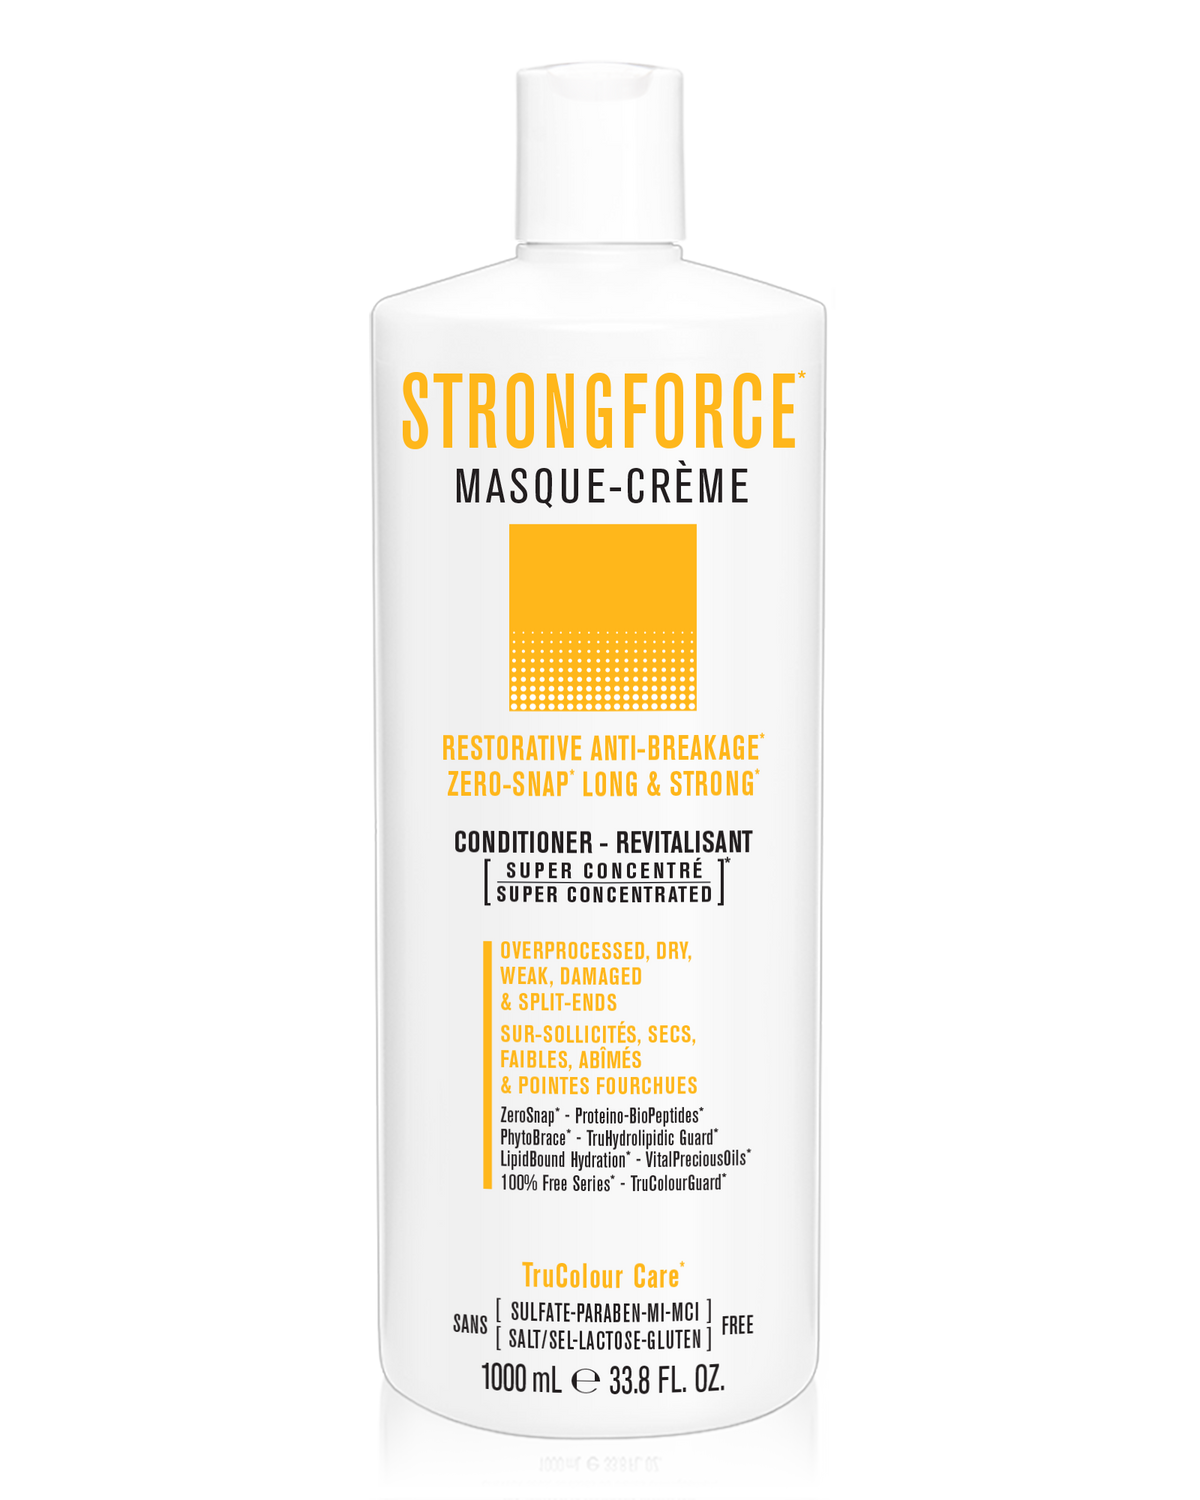 STRONGFORCE MASQUE-CREME - SNOBGIRLS.com